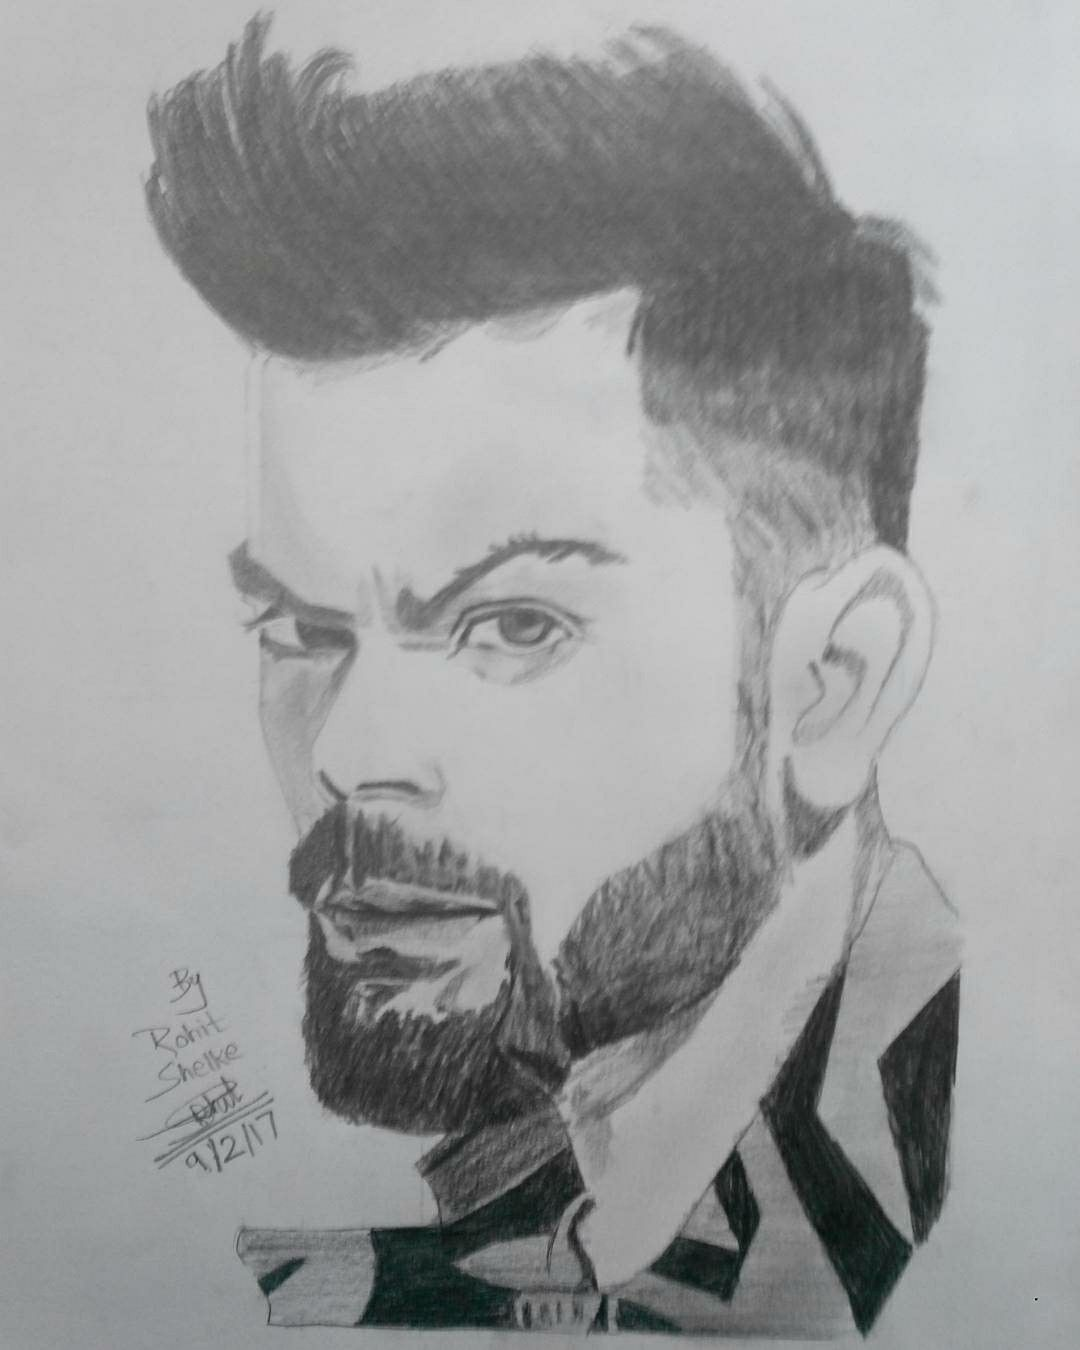 How To Draw A Virat Kohli Picture